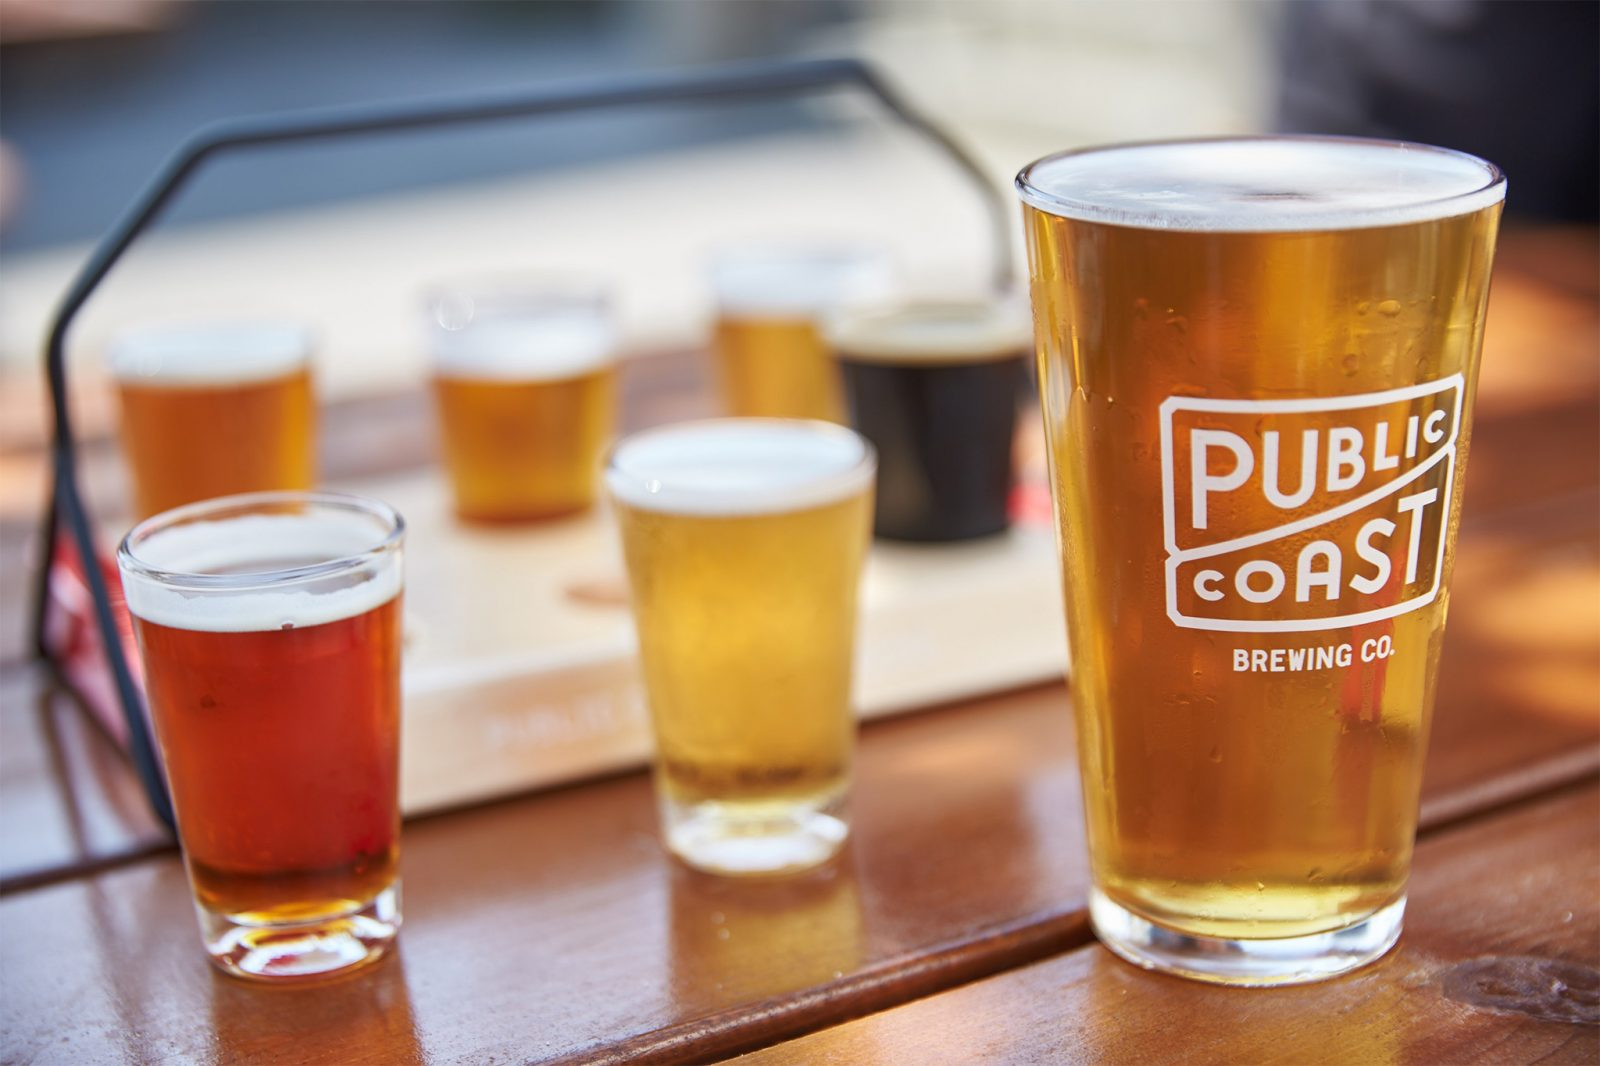 Flying Fish Farmhouse Summer Ale Food At Public Coast Brewing Co Restaurant And Bar In